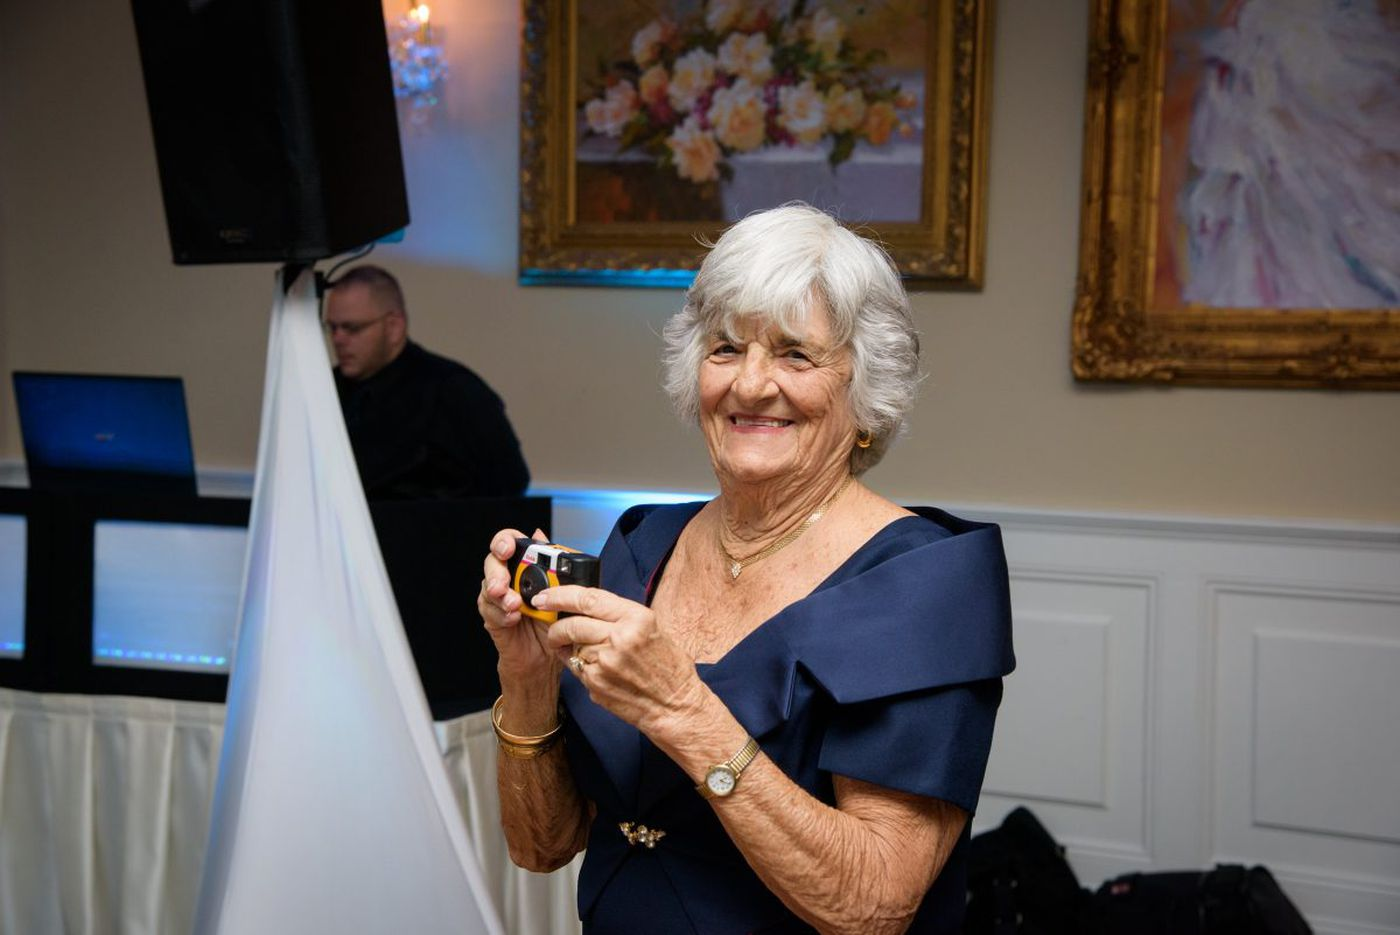 Irene Morgan, 89, New Jersey's funny, irrepressible 'flower lady'